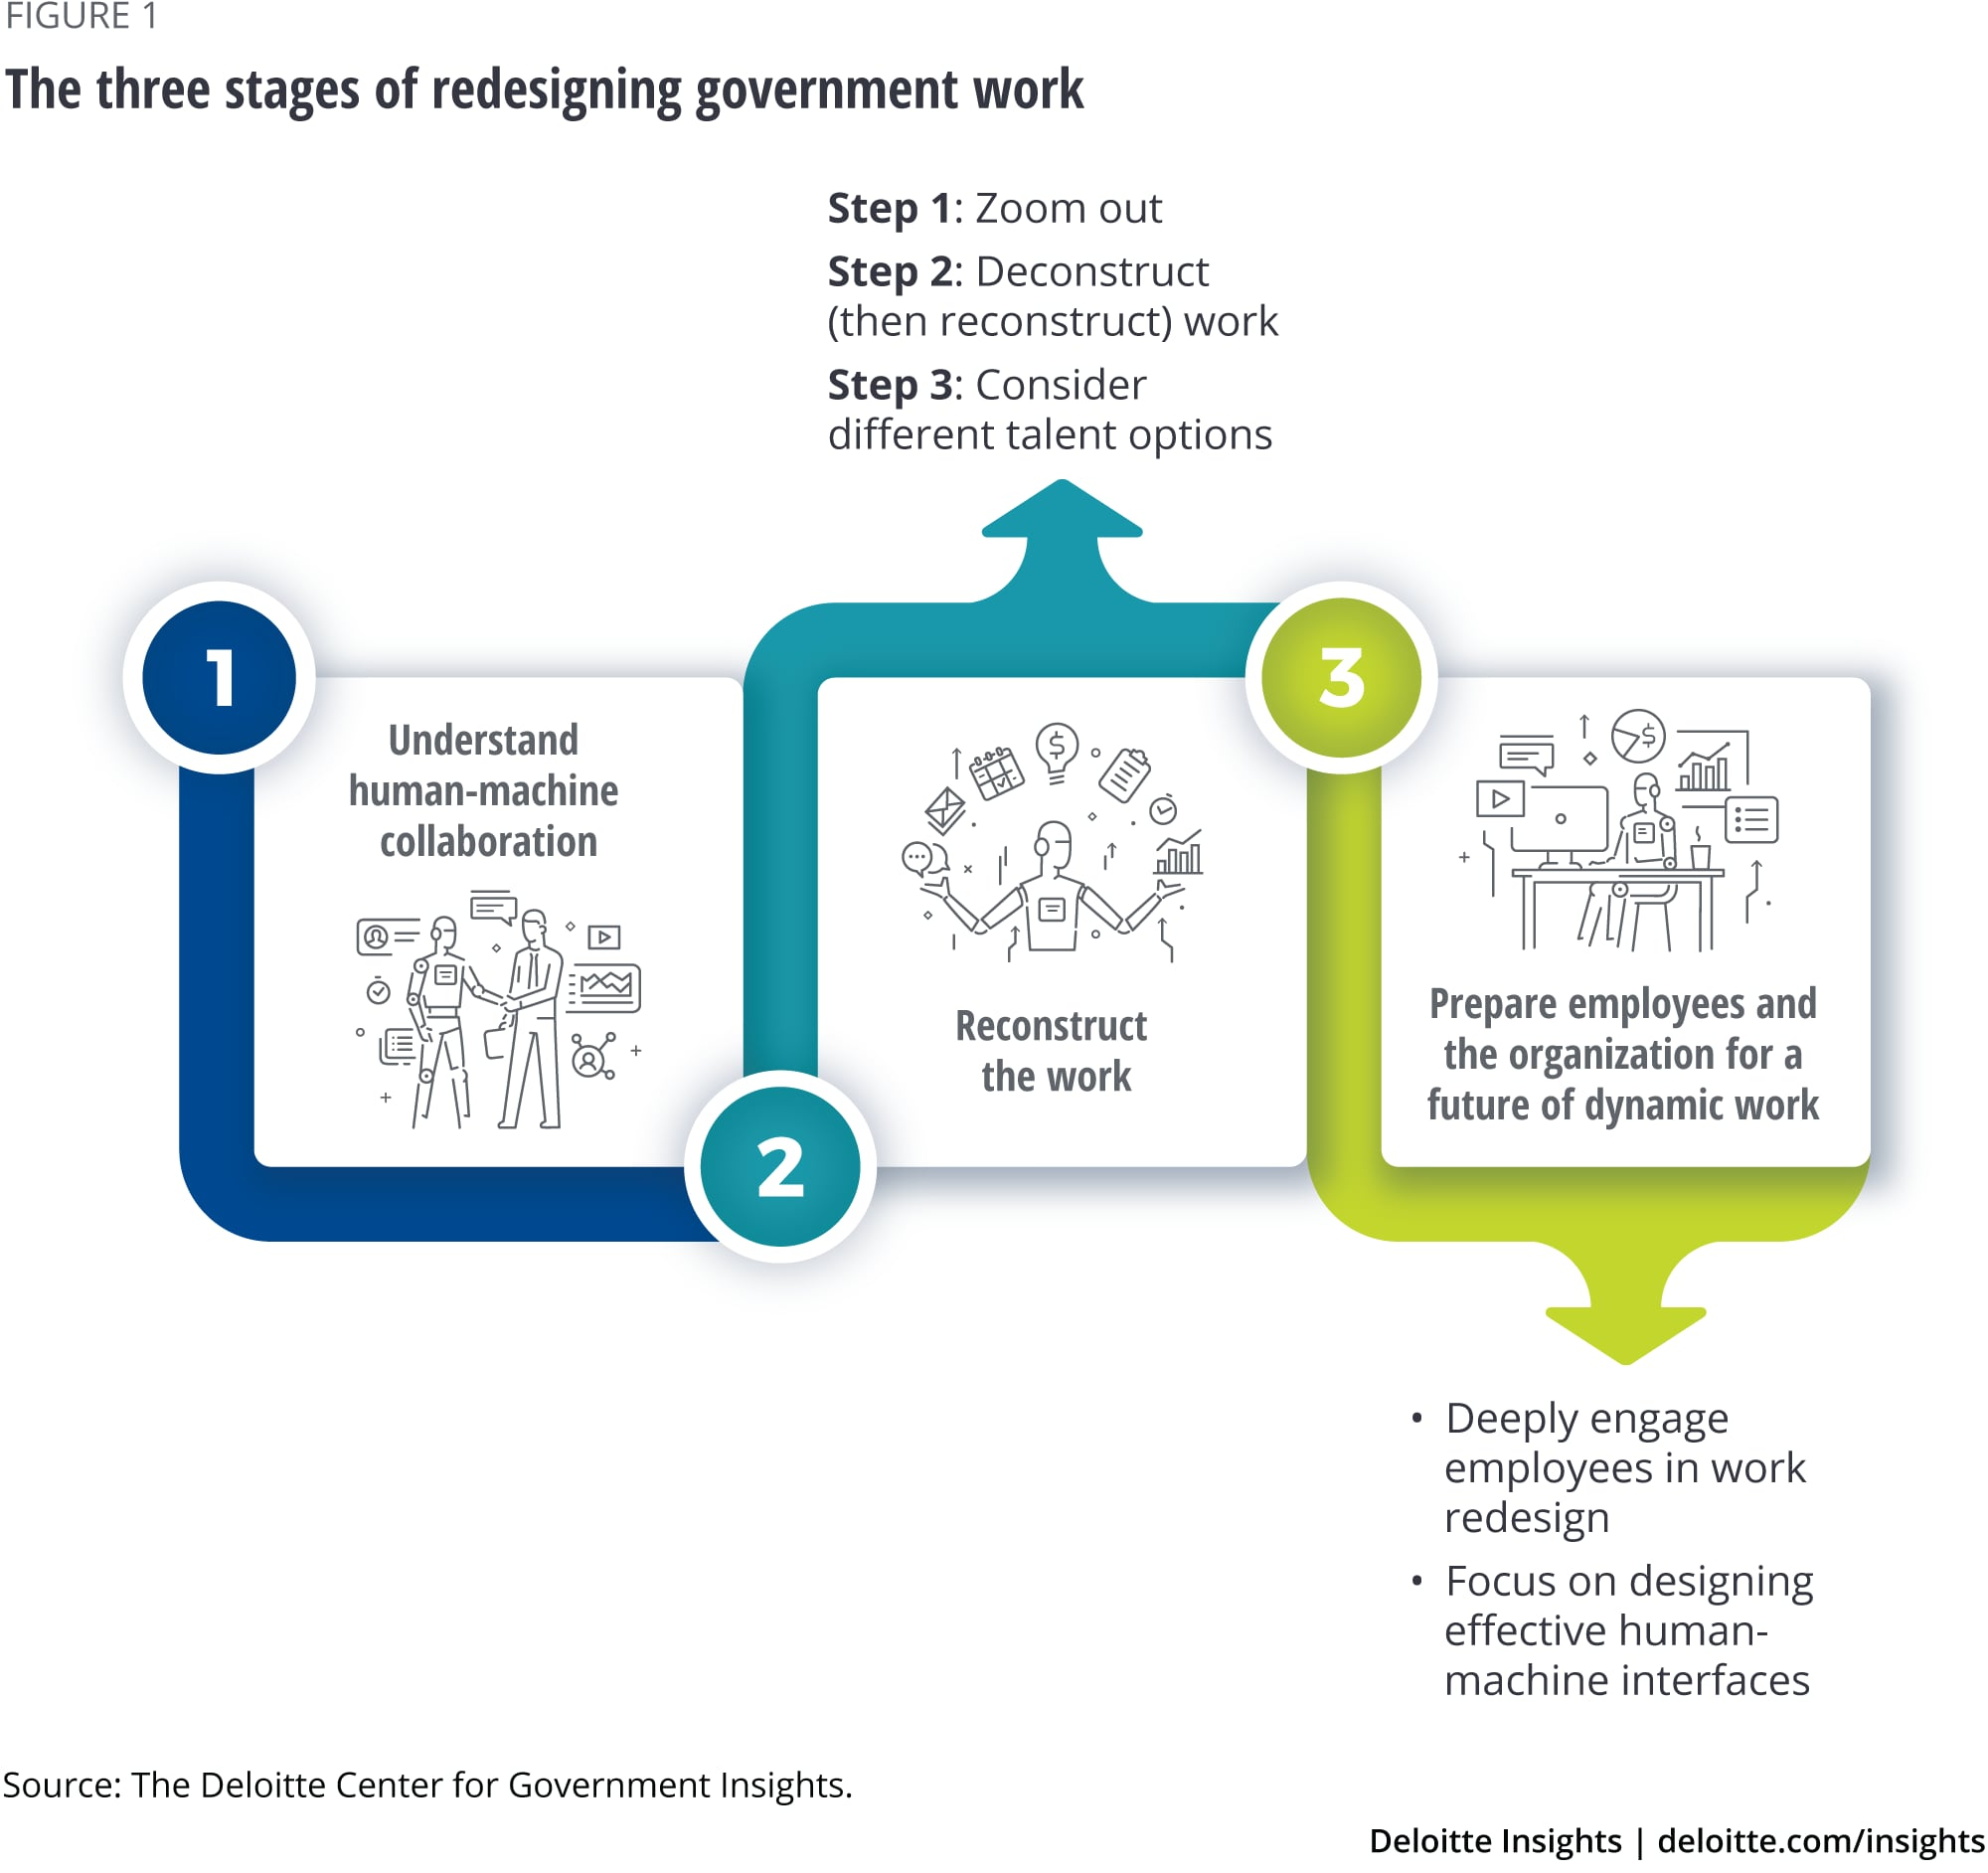 The three stages of redesigning government work